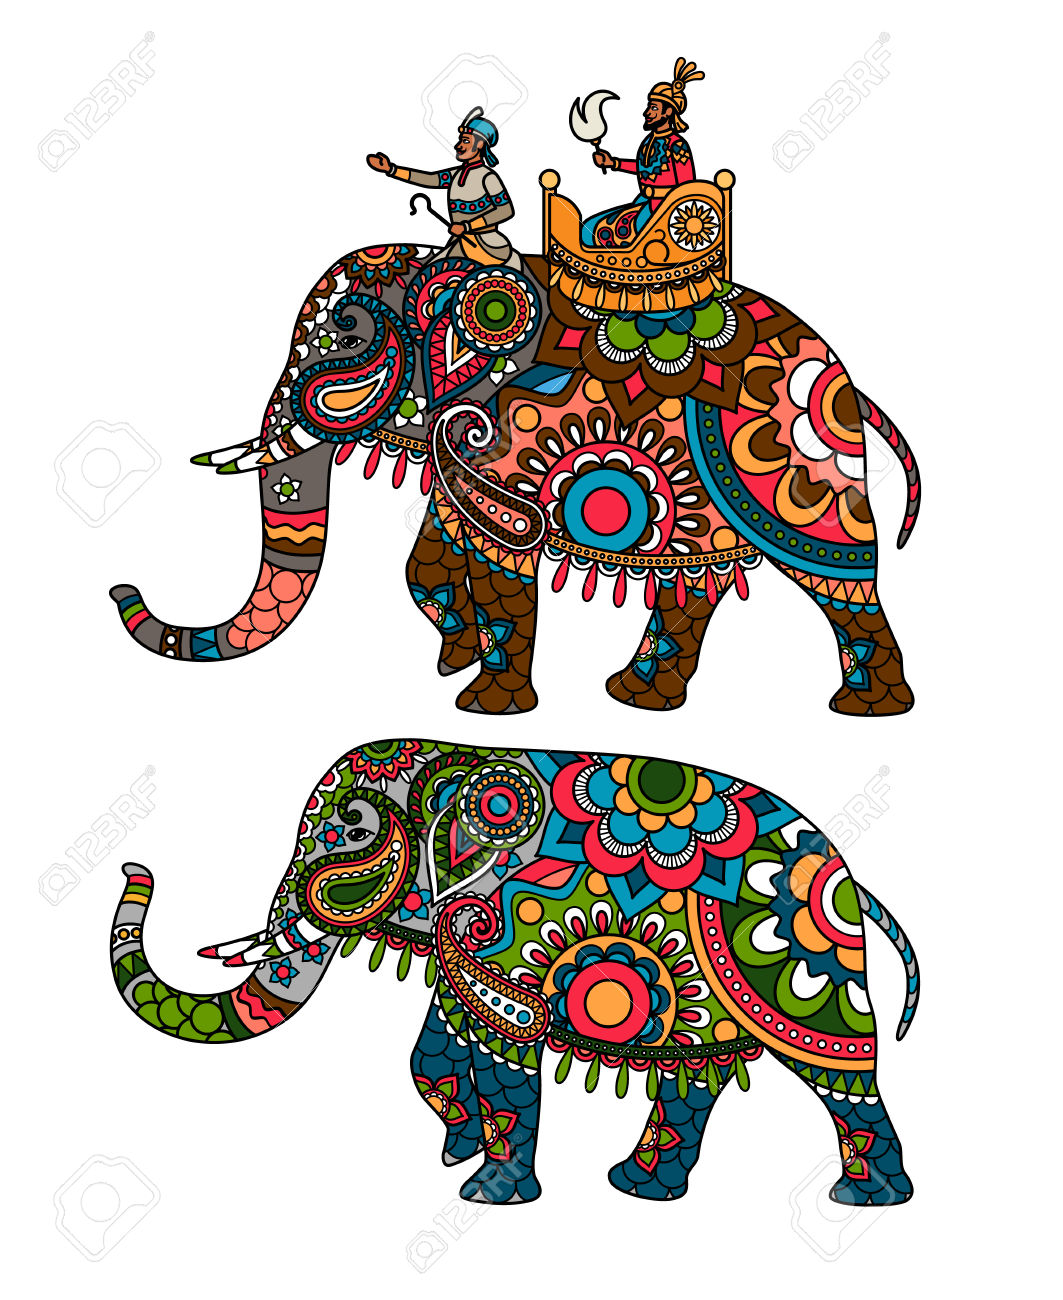 137 Maharaja Stock Vector Illustration And Royalty Free Maharaja.